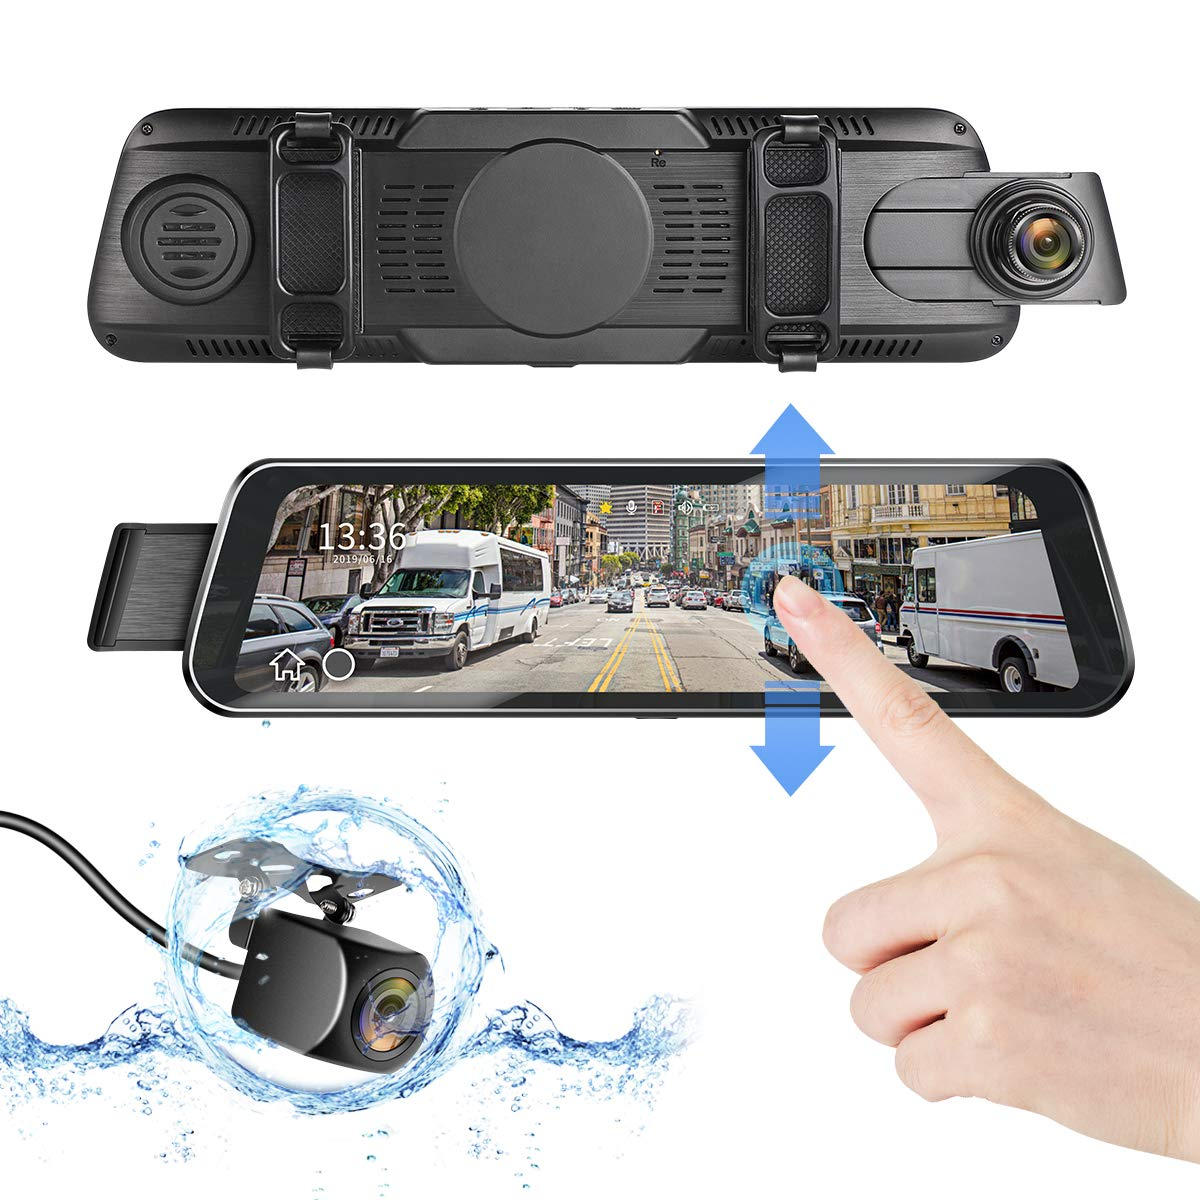 DUTERI D Mirror Dash Cam Rear View Camera Cars Video Backup Parking 24H's Monitor with Night Vision G-Sensor Waterproof 170°HD 1080P 9.66'' Full Size Touch Screen by DUTERI D